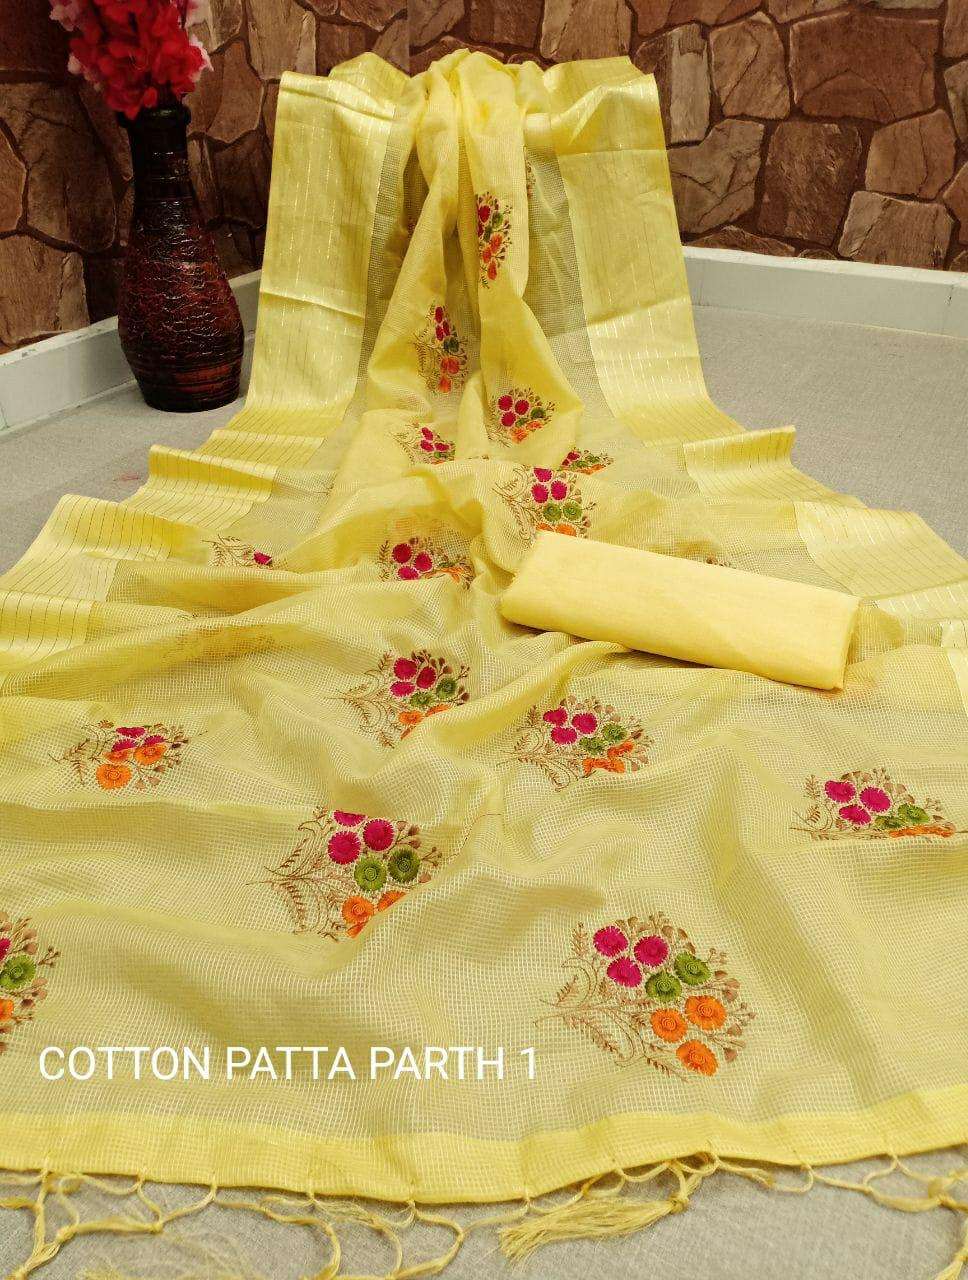 Thankar Cotton Patta Parth -1 Cotton With Embroidery Work Saree Catalog at Wholesale rate